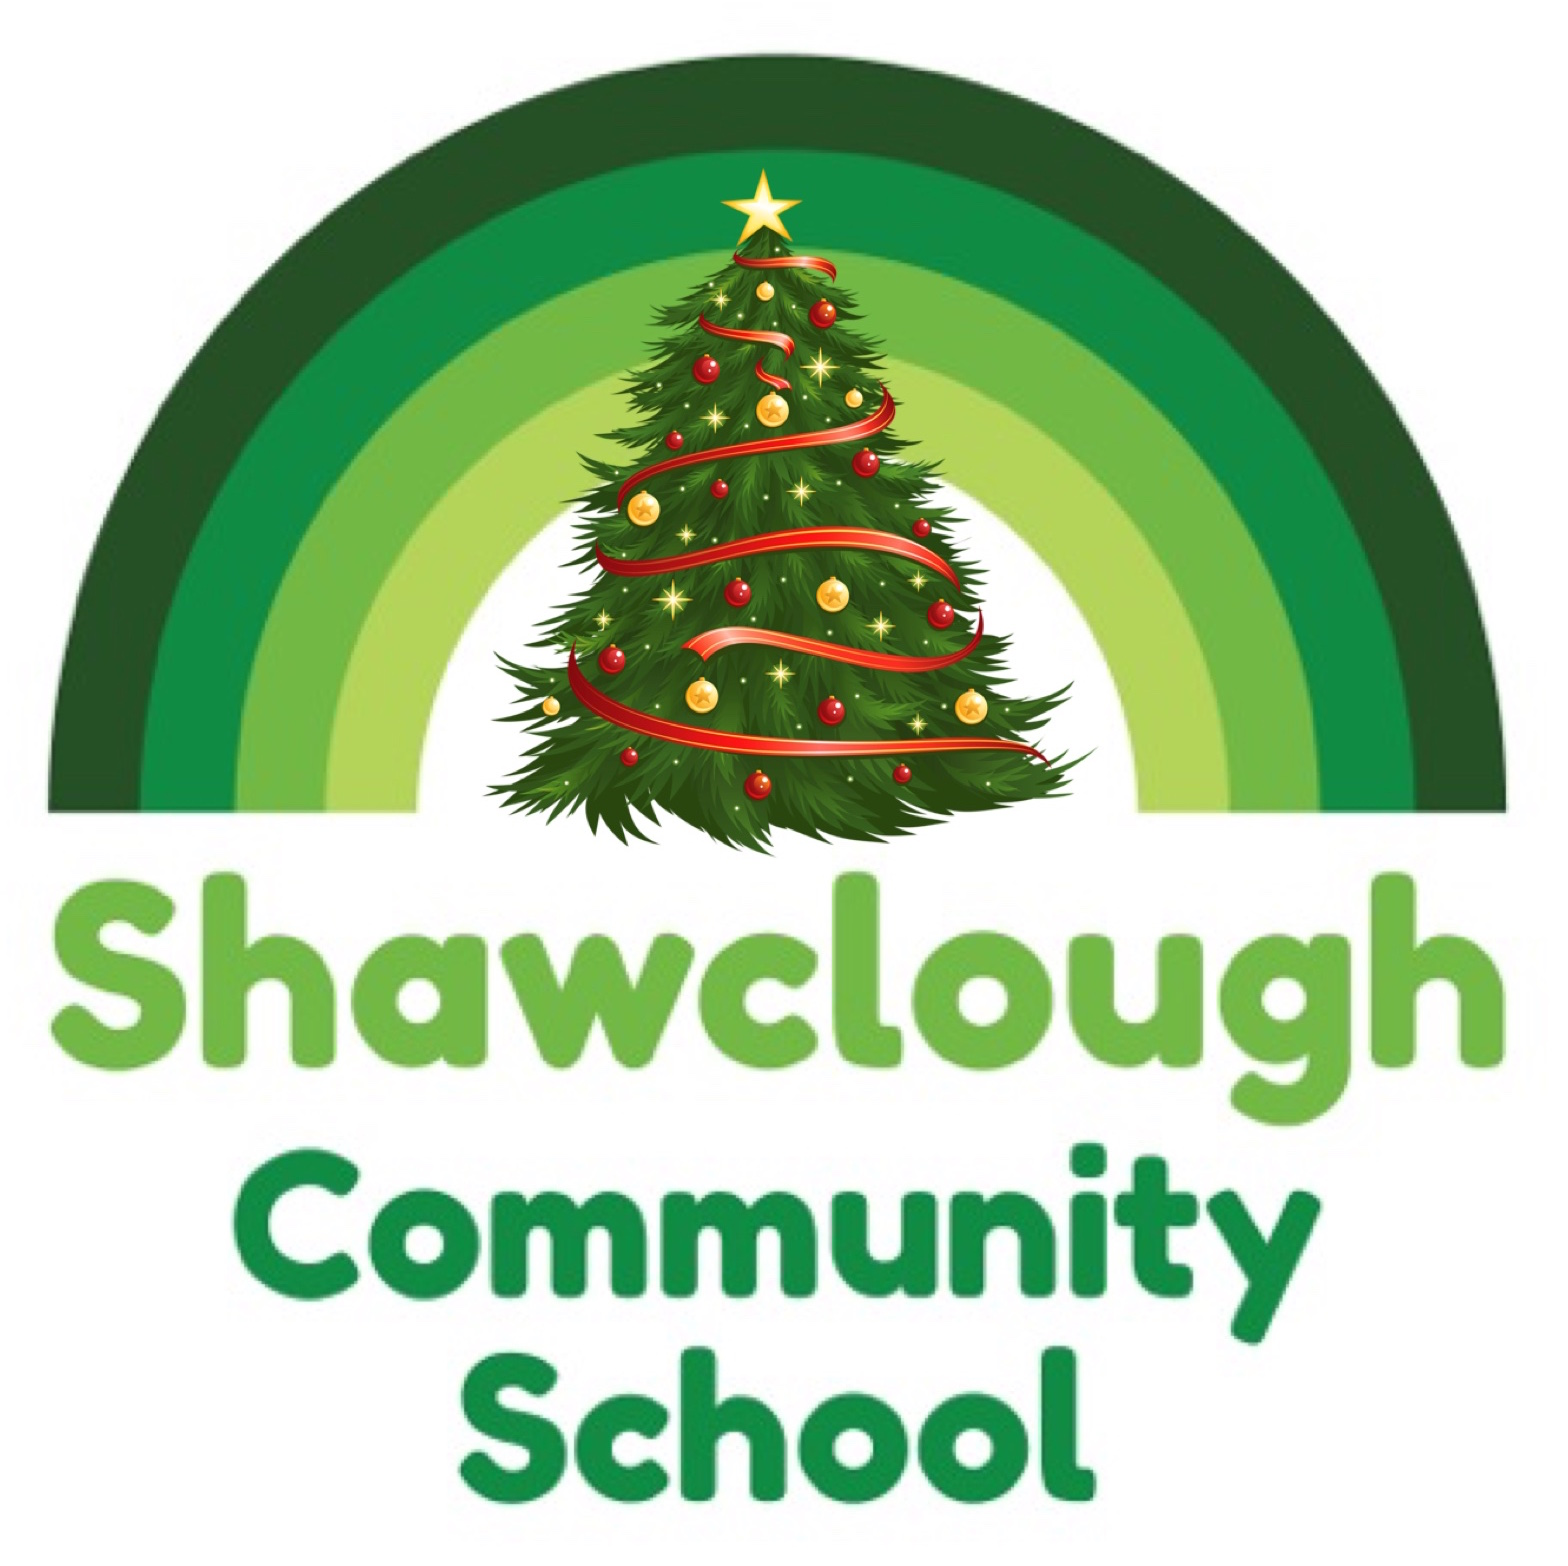 Shawclough Community Primary School